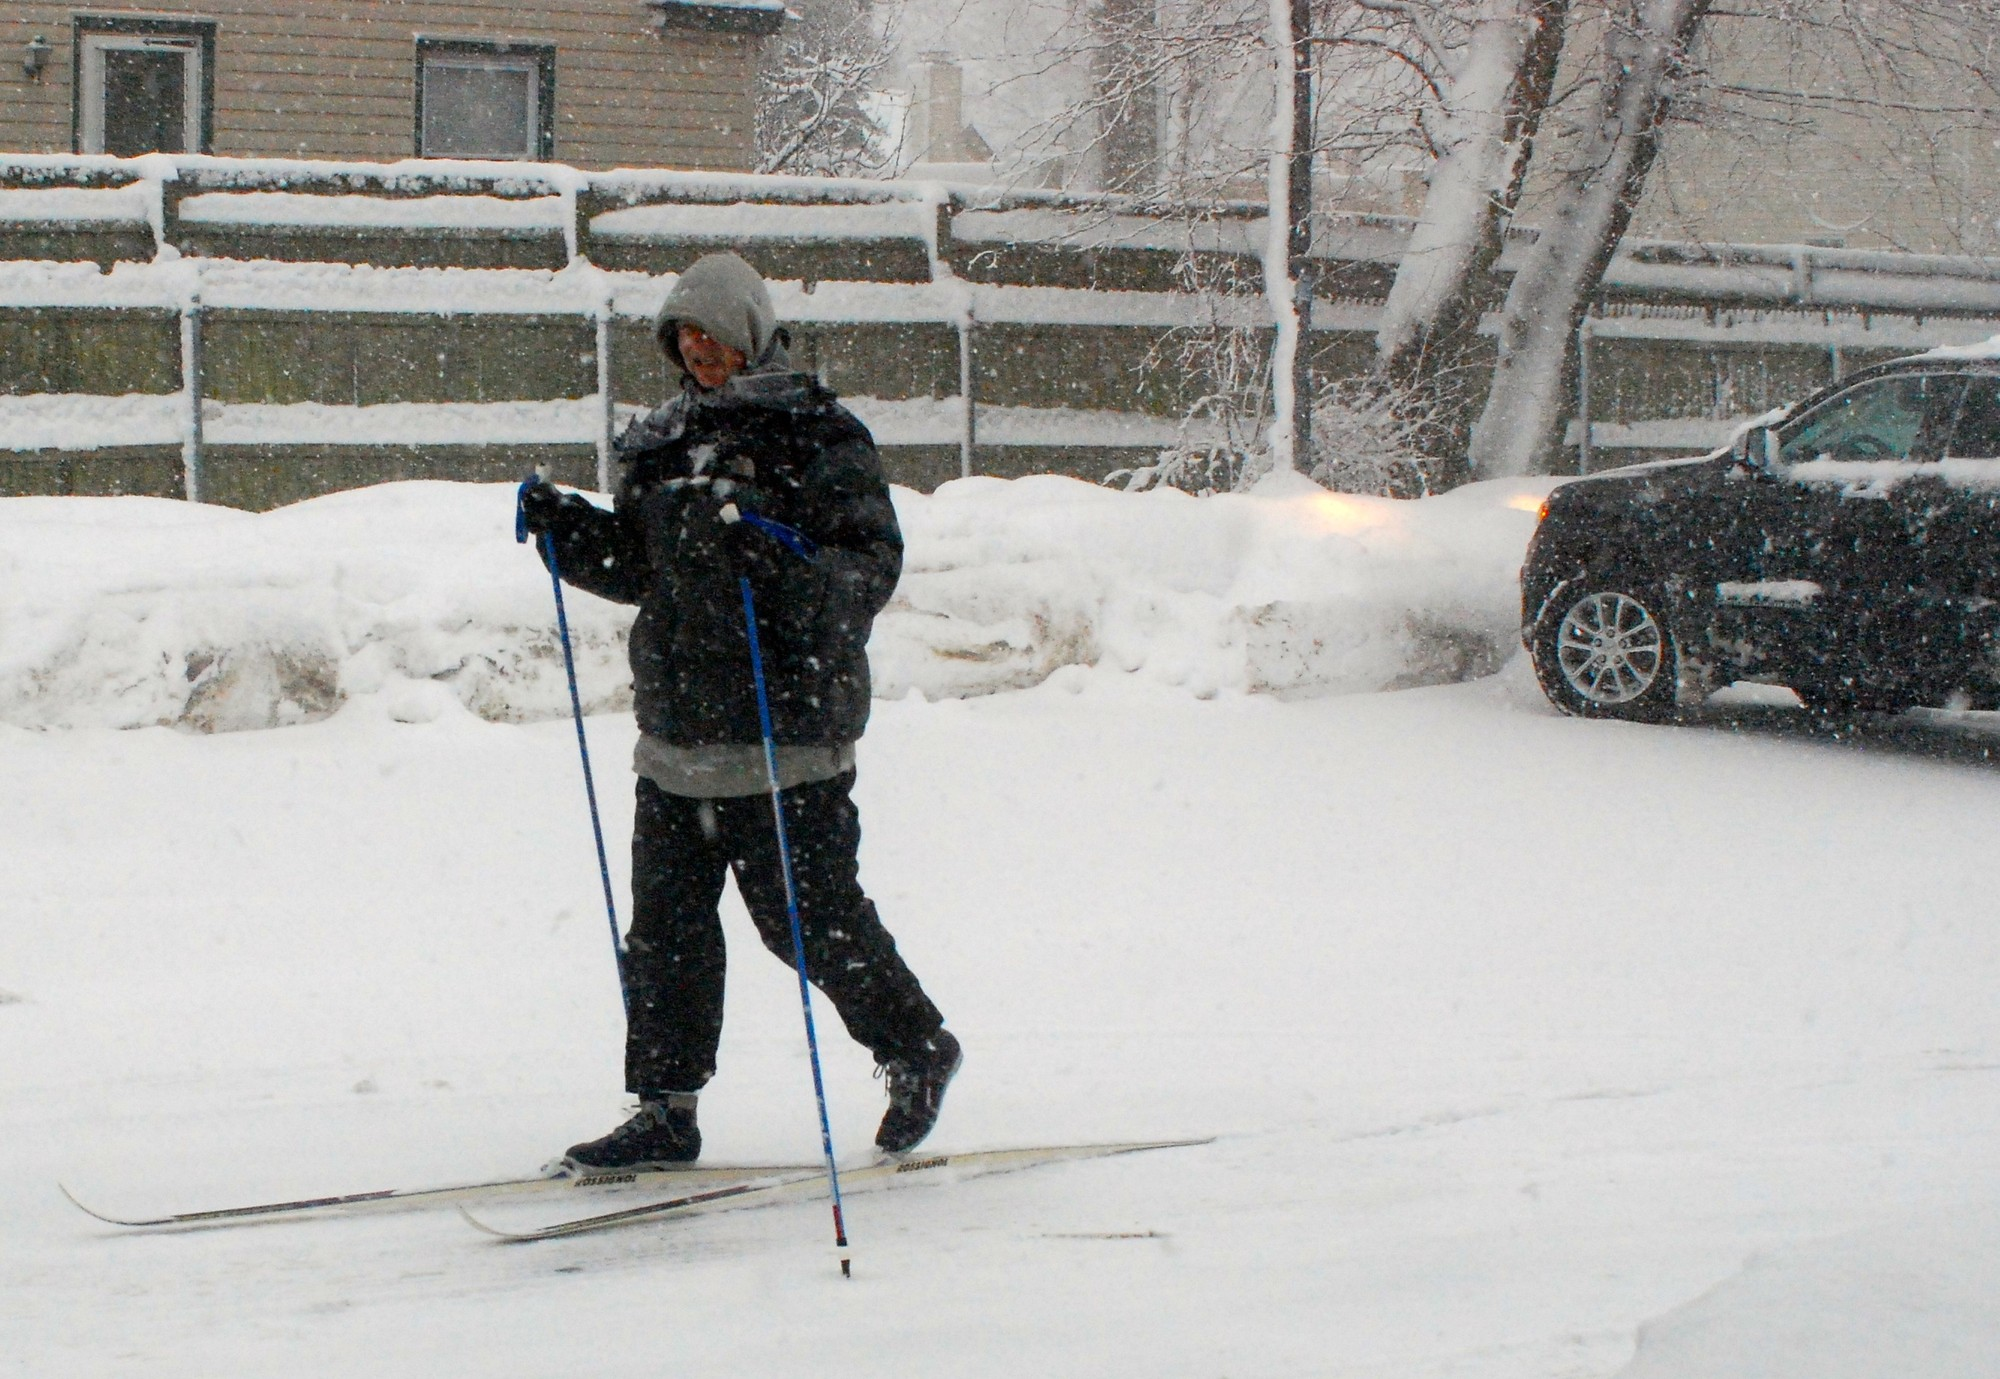 Cross-country skis were probably the best mode of transportation on Feb. 13, when a nor'easter rolled through Bellmore-Merrick. This skier made his way through a parking lot on the south side of Merrick Road in Merrick around 8:30 a.m.